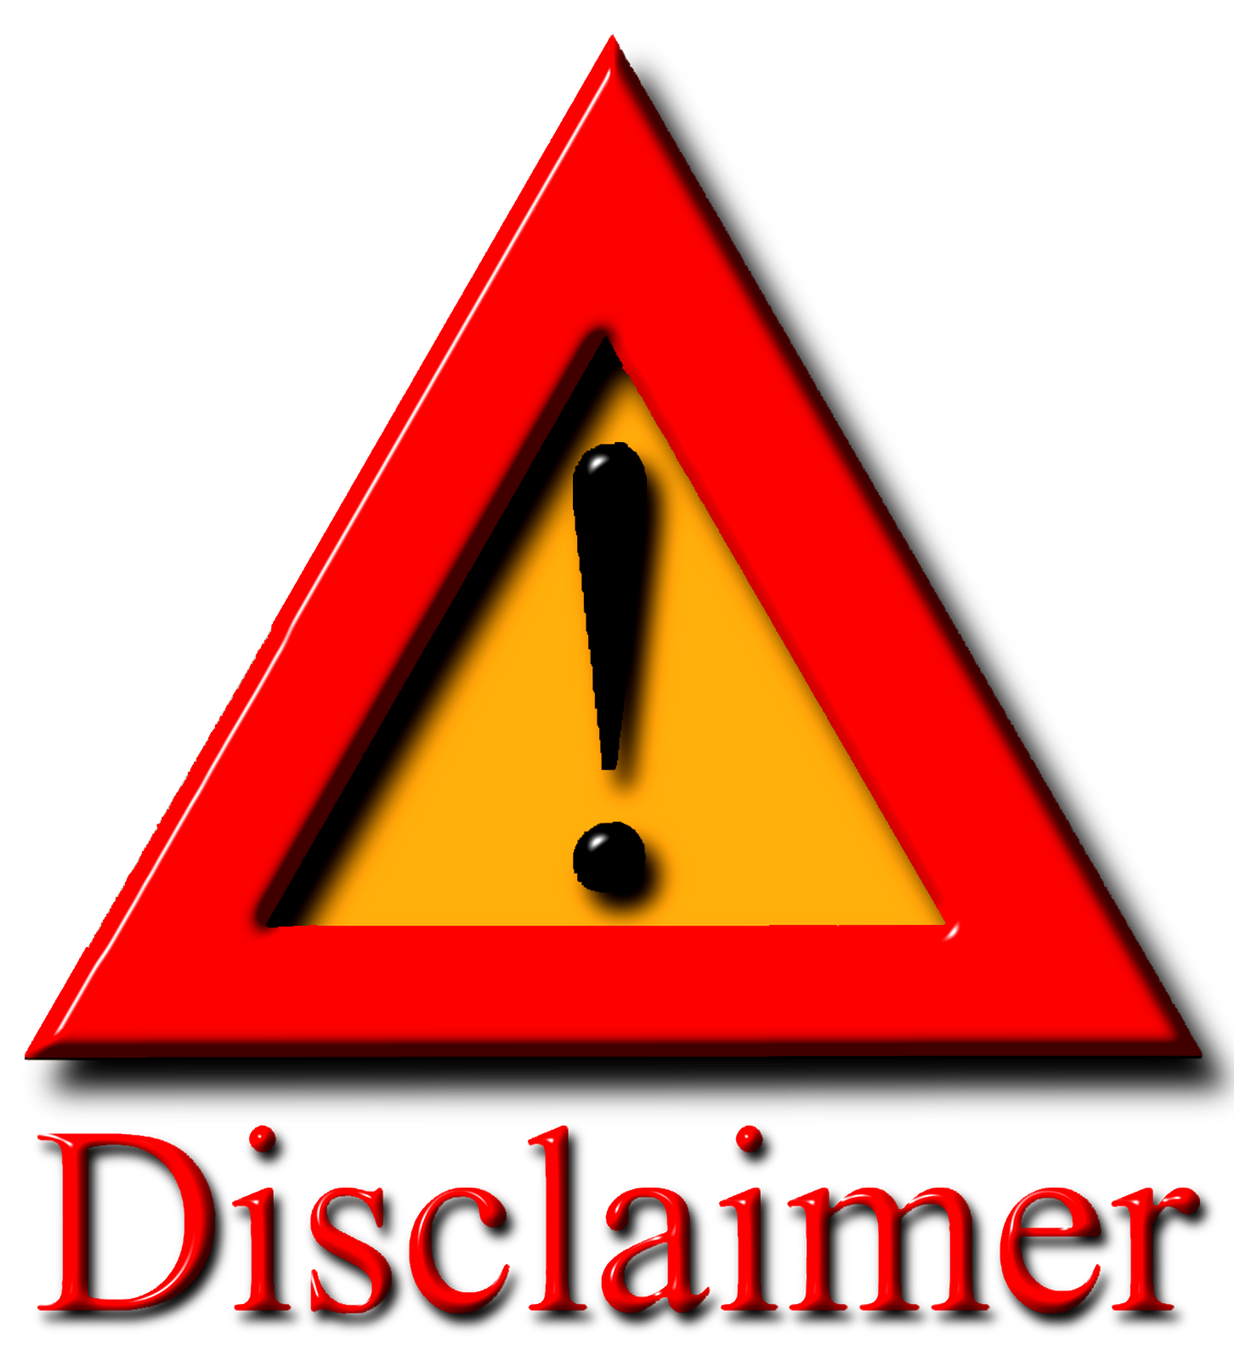 Disclaimer Symbol PNG Transparent Images.